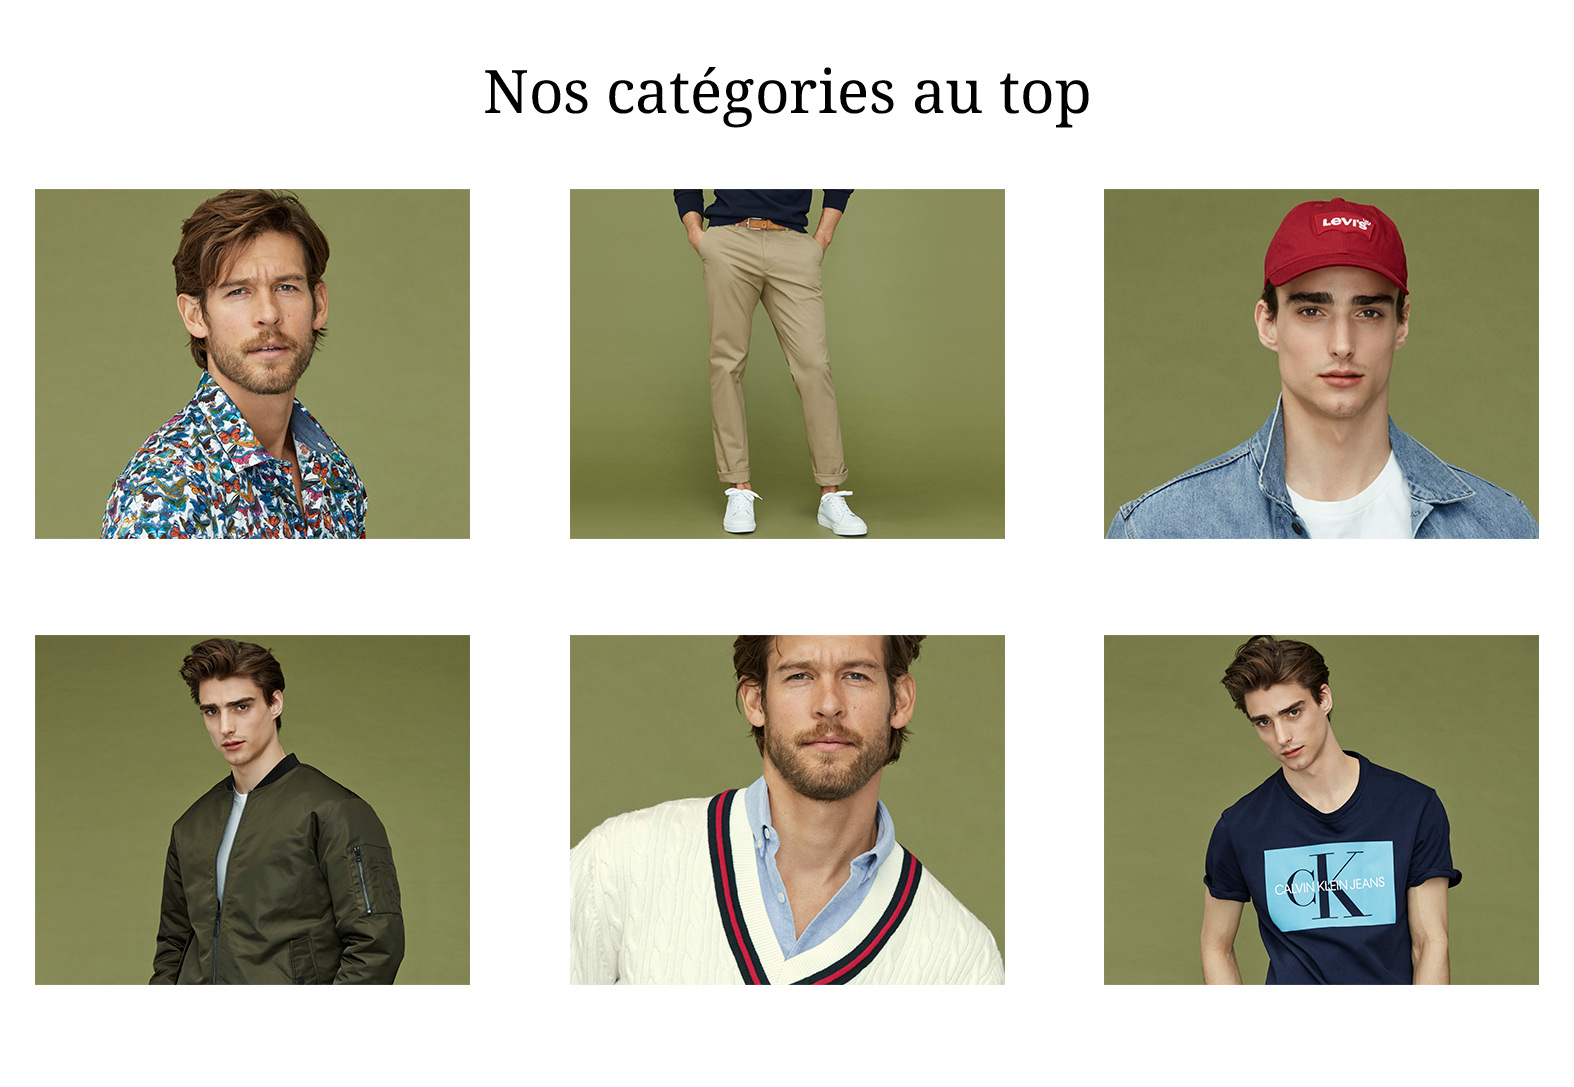 D-LH-04-P19-LE31-Categories.psd